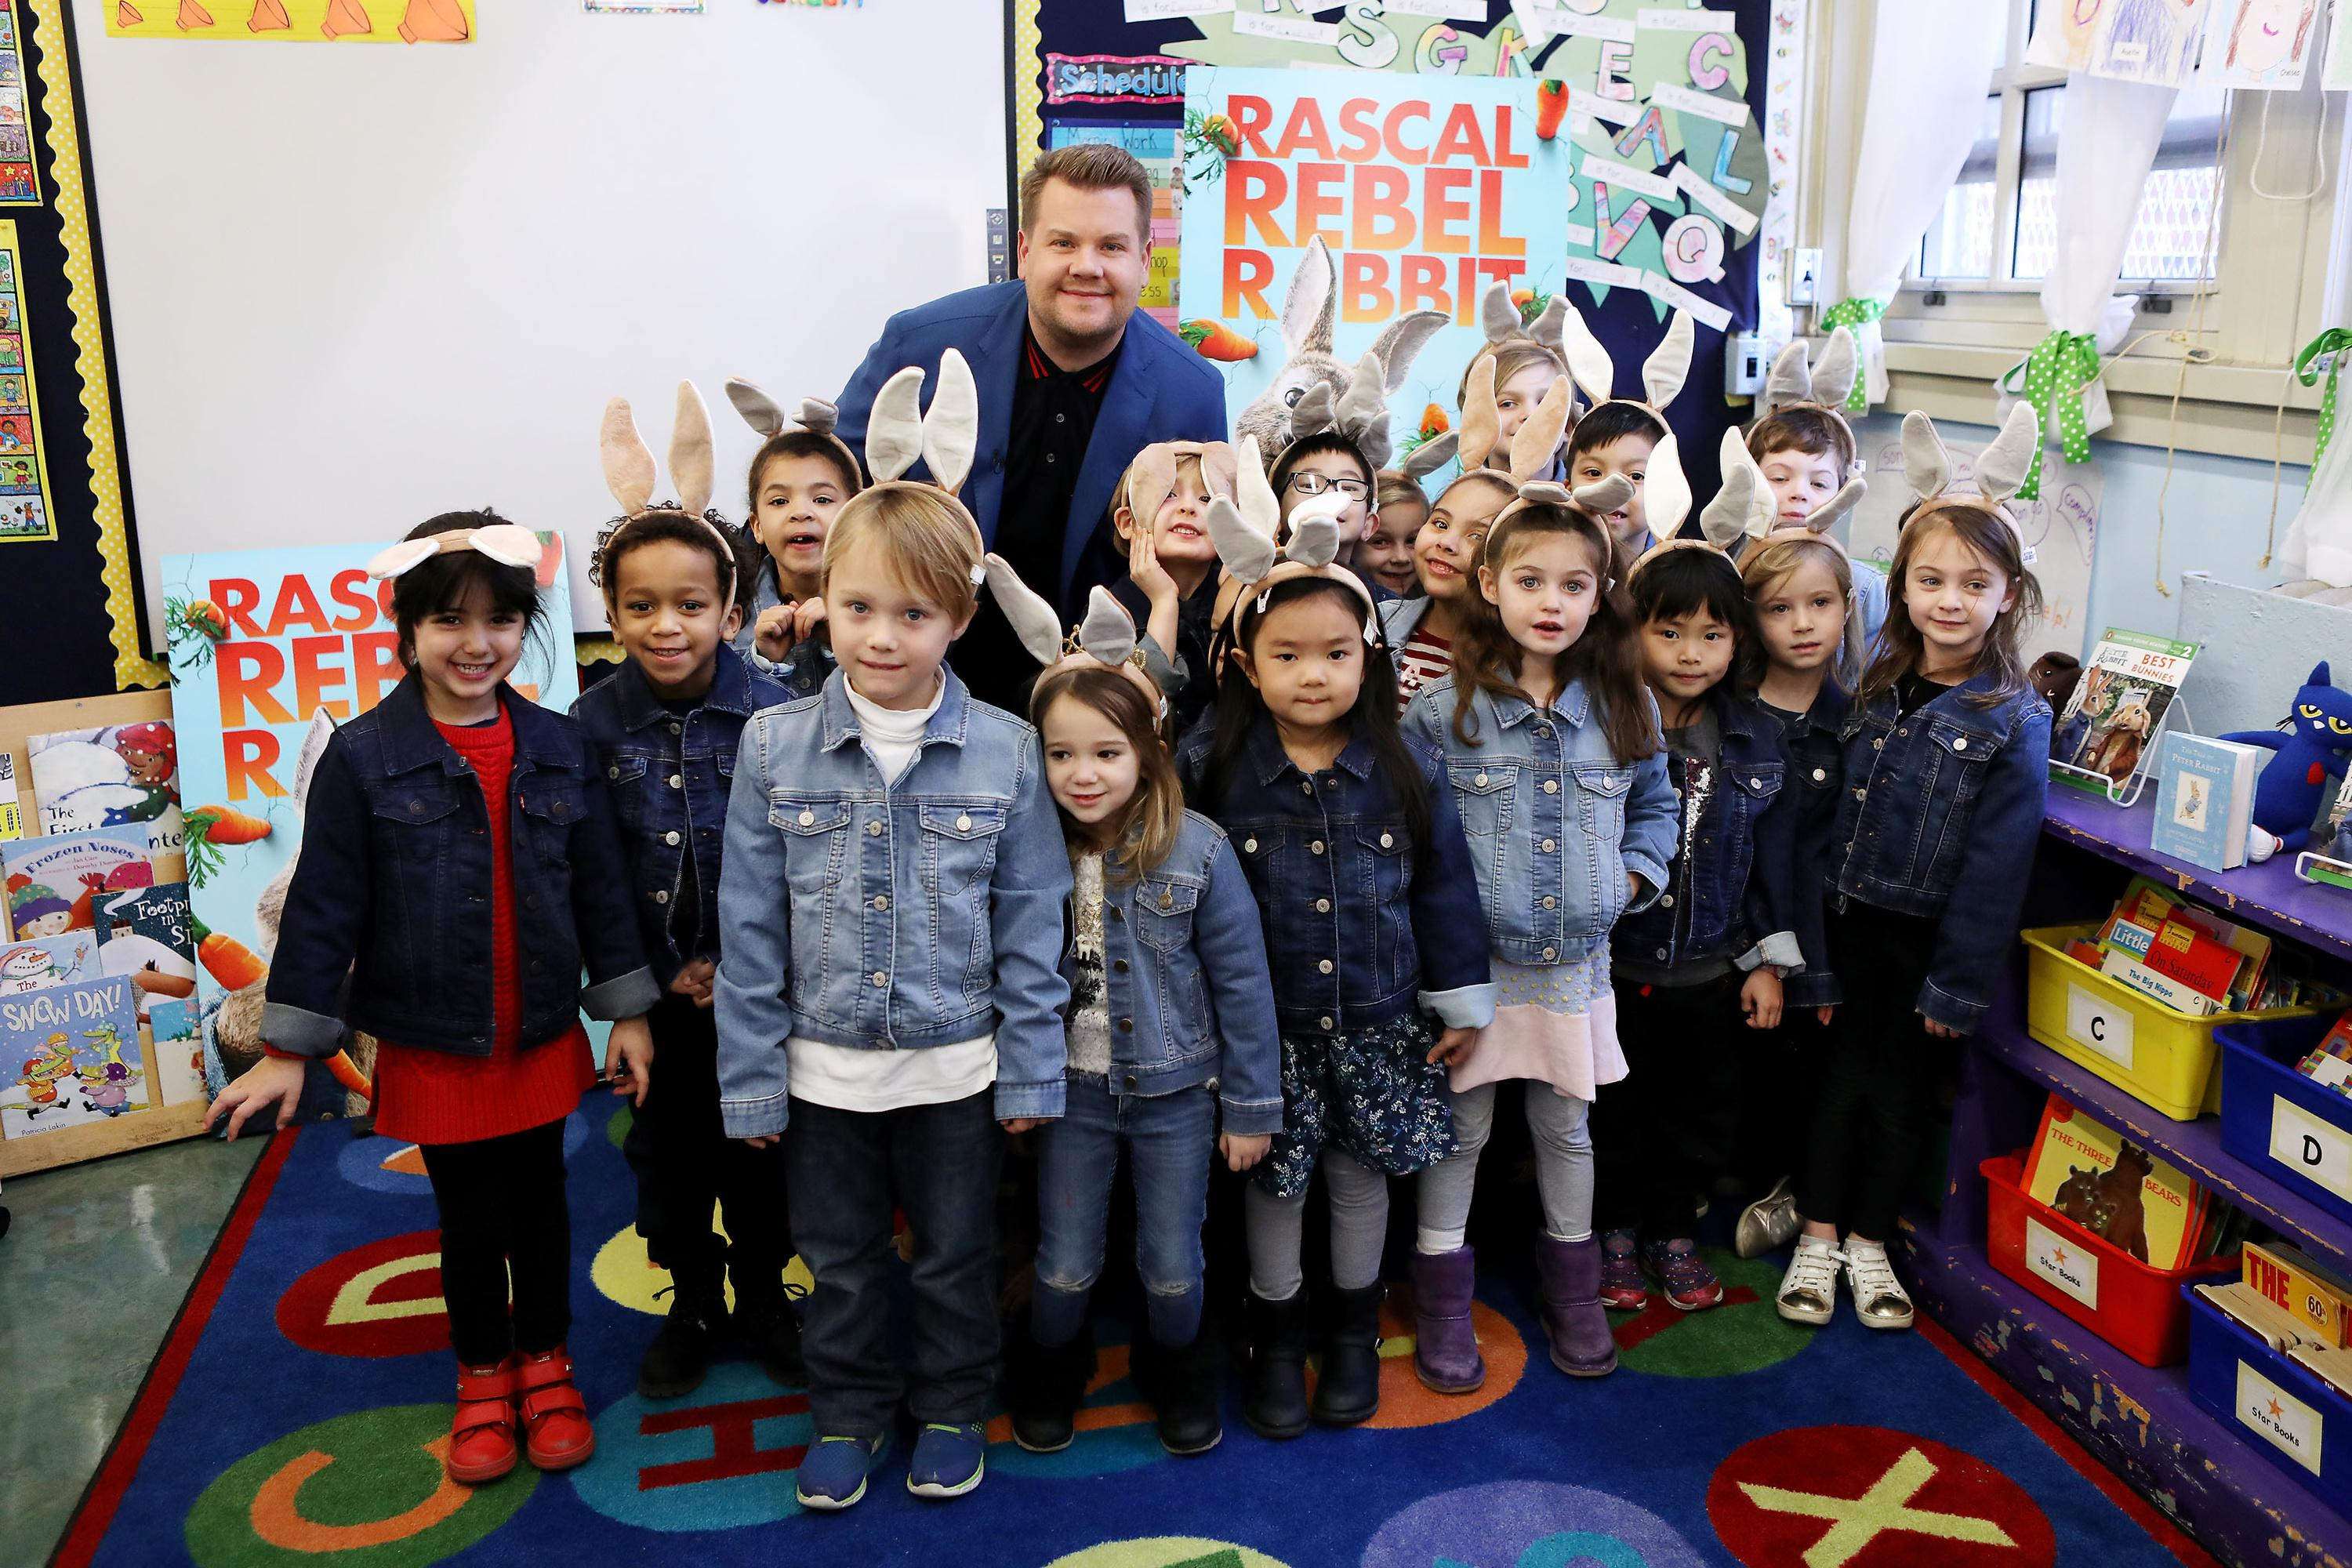 New York, NY - 1/25/18  - James Corden with students at New York City School to announce Blue Jacket Day on behalf of Columbia Pictures' PETER RABBIT.{ }(Photo:  Patrick Lewis courtesy of Sony Pictures)